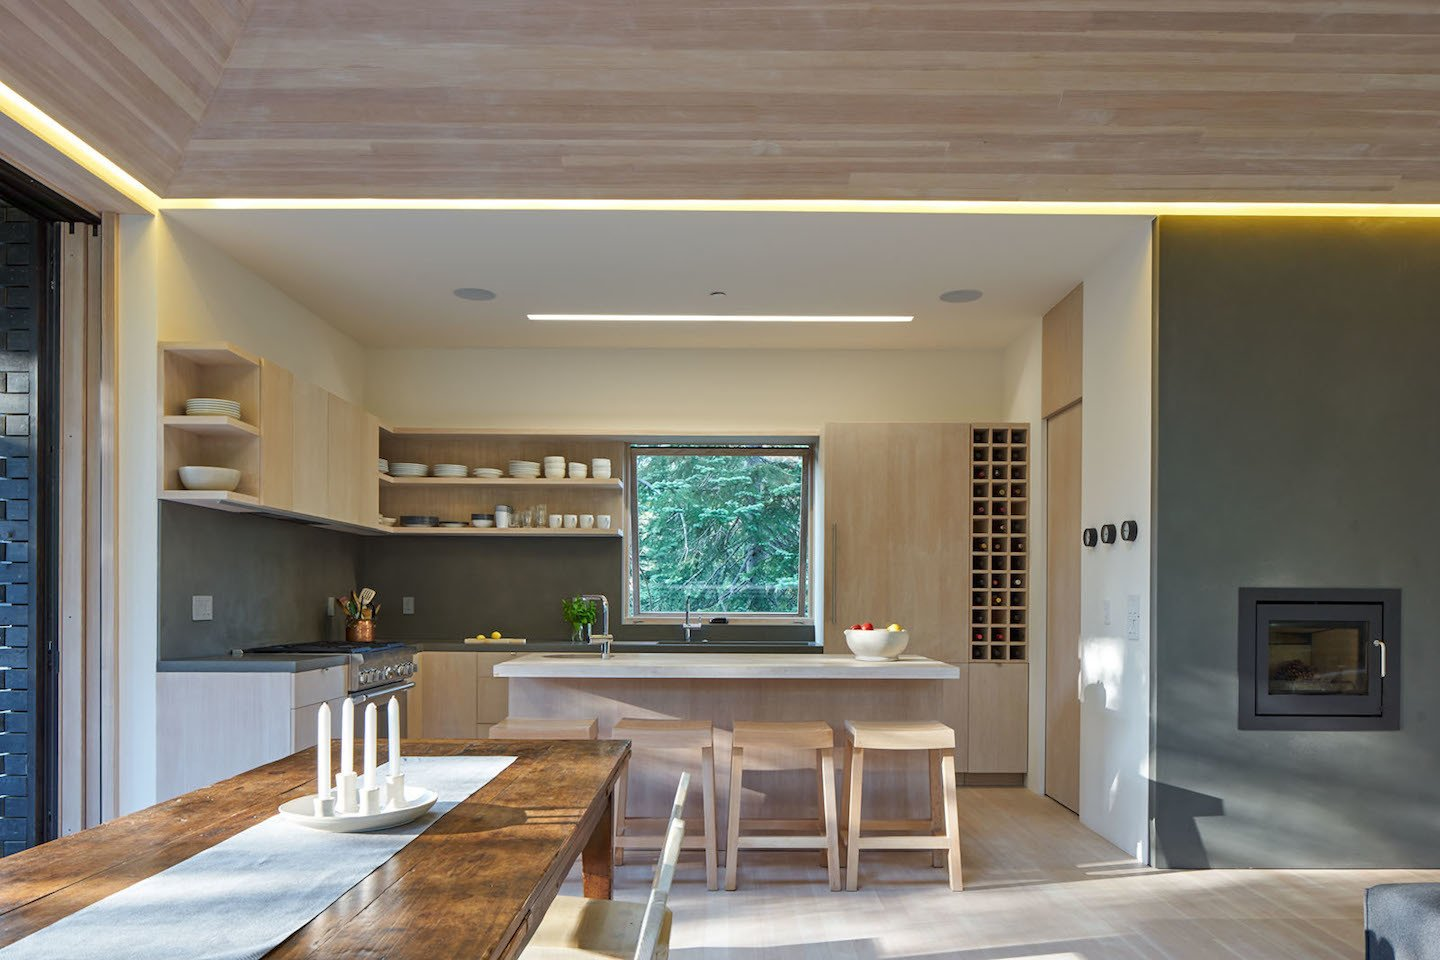 The open-plan kitchen serves the family's needs for easy entertaining. The four bar stools are also custom designed by Lexie and were built by Yvonne Mouser. Here's What Norse Mythology and Modern Architecture Have in Common - Photo 4 of 7